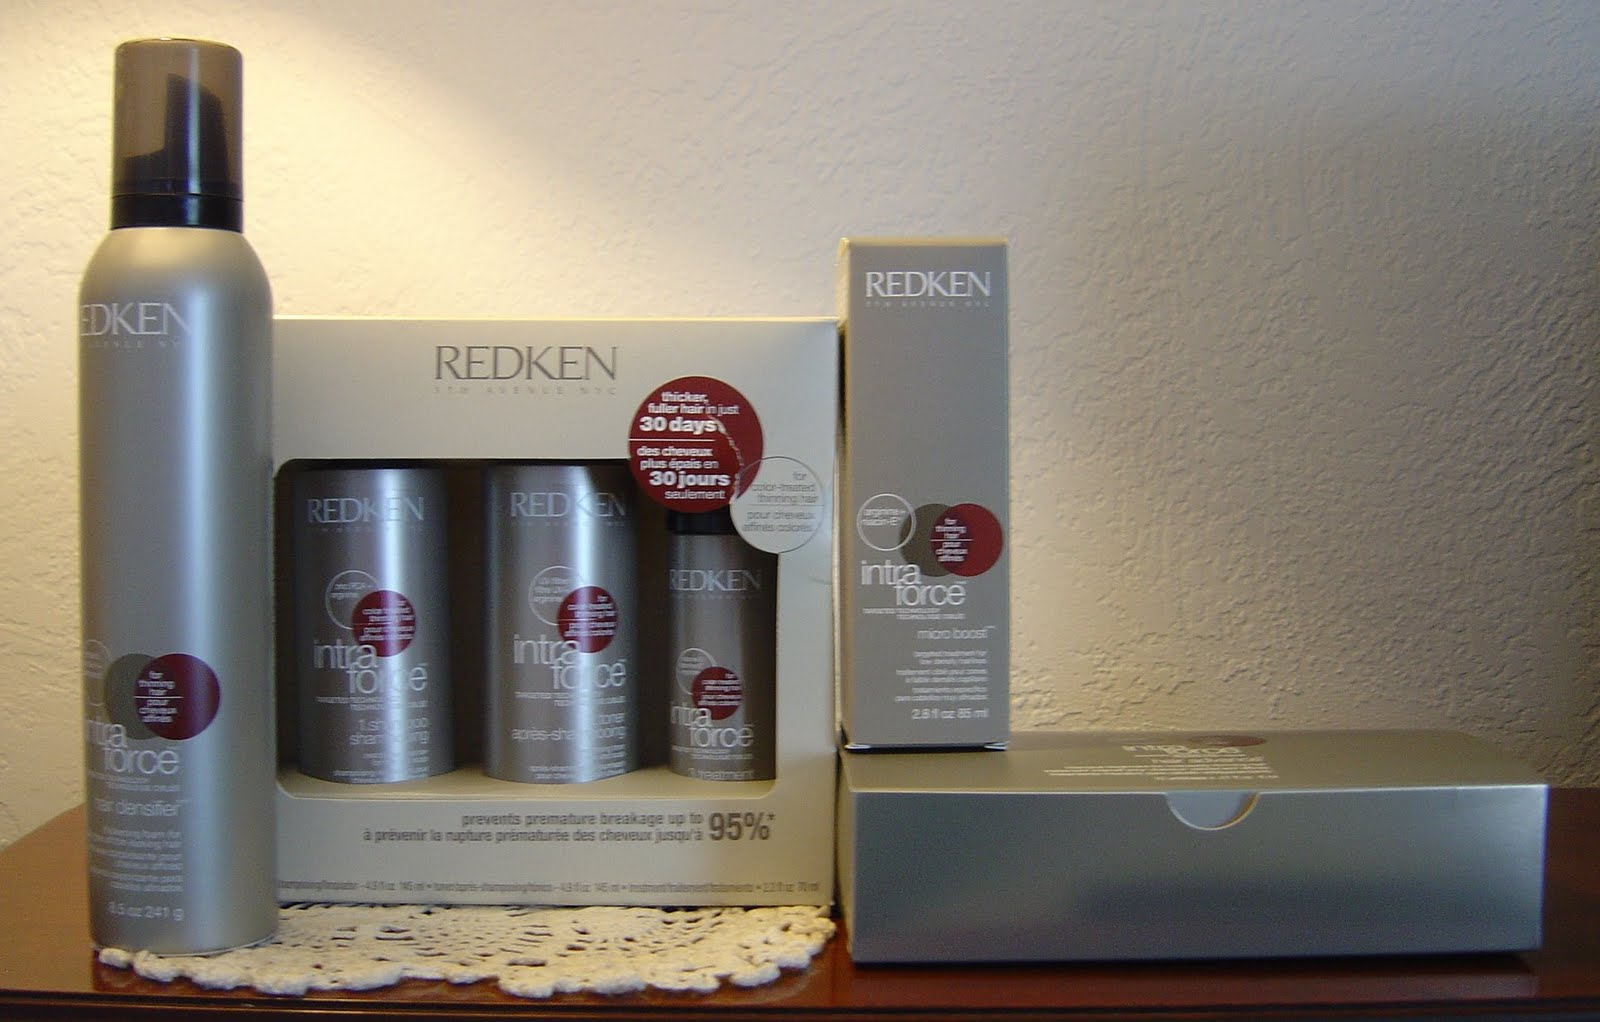 Redken Intra Force Hair Care Line